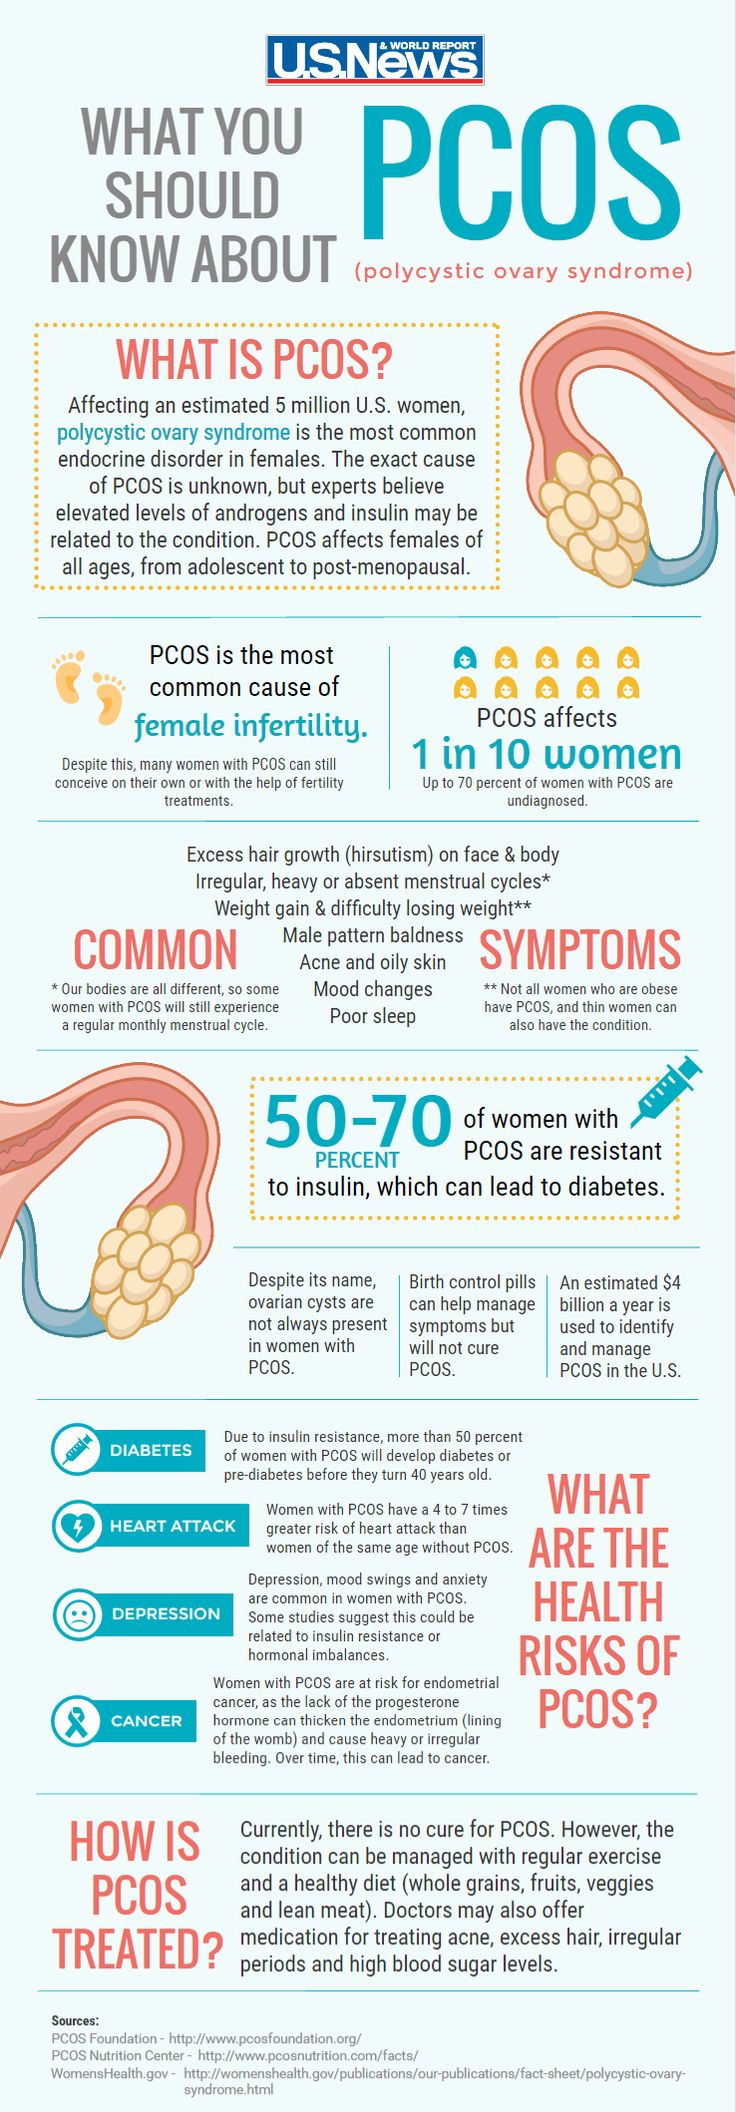 Infographic: What You Should Know About PCOS. Read, lower you carbs to lower bloos sugar levels, which will loer your insuline levels and make you less insoline resistant.